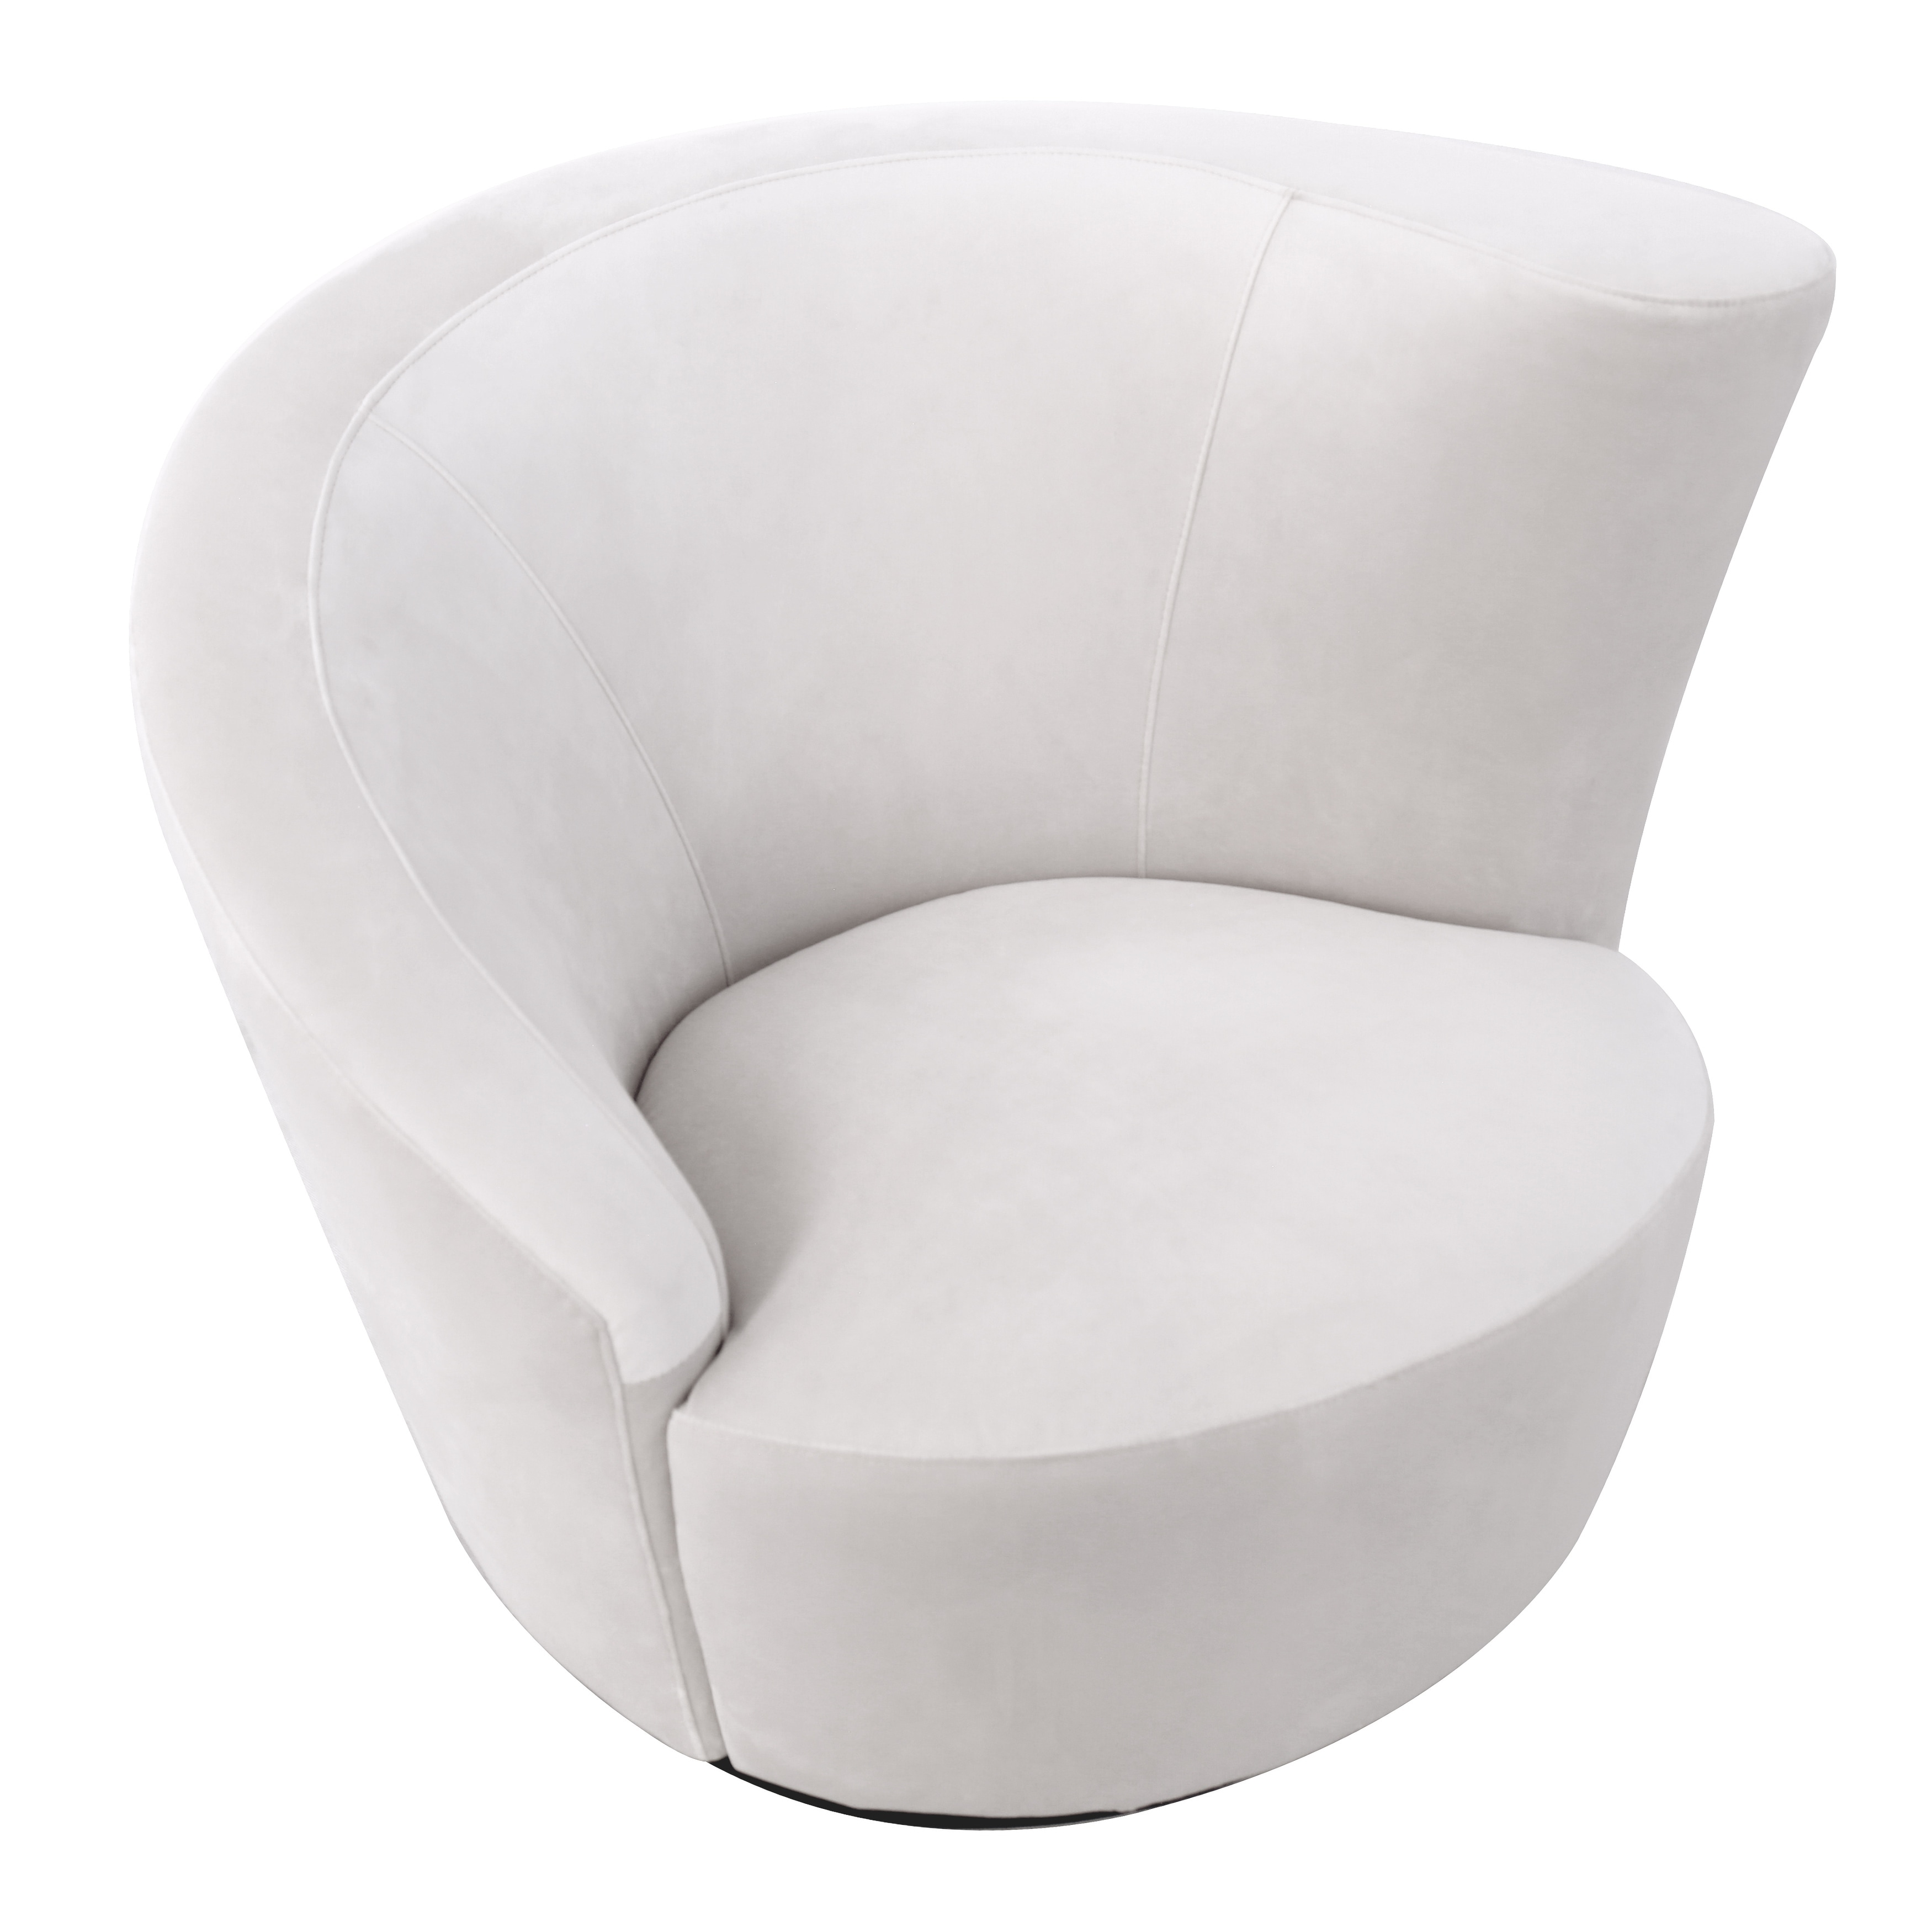 Pasargad Home Vicenza White Velvet Crescent Swivel Chair W37 Xd34 Xh30 Overstock 28458627